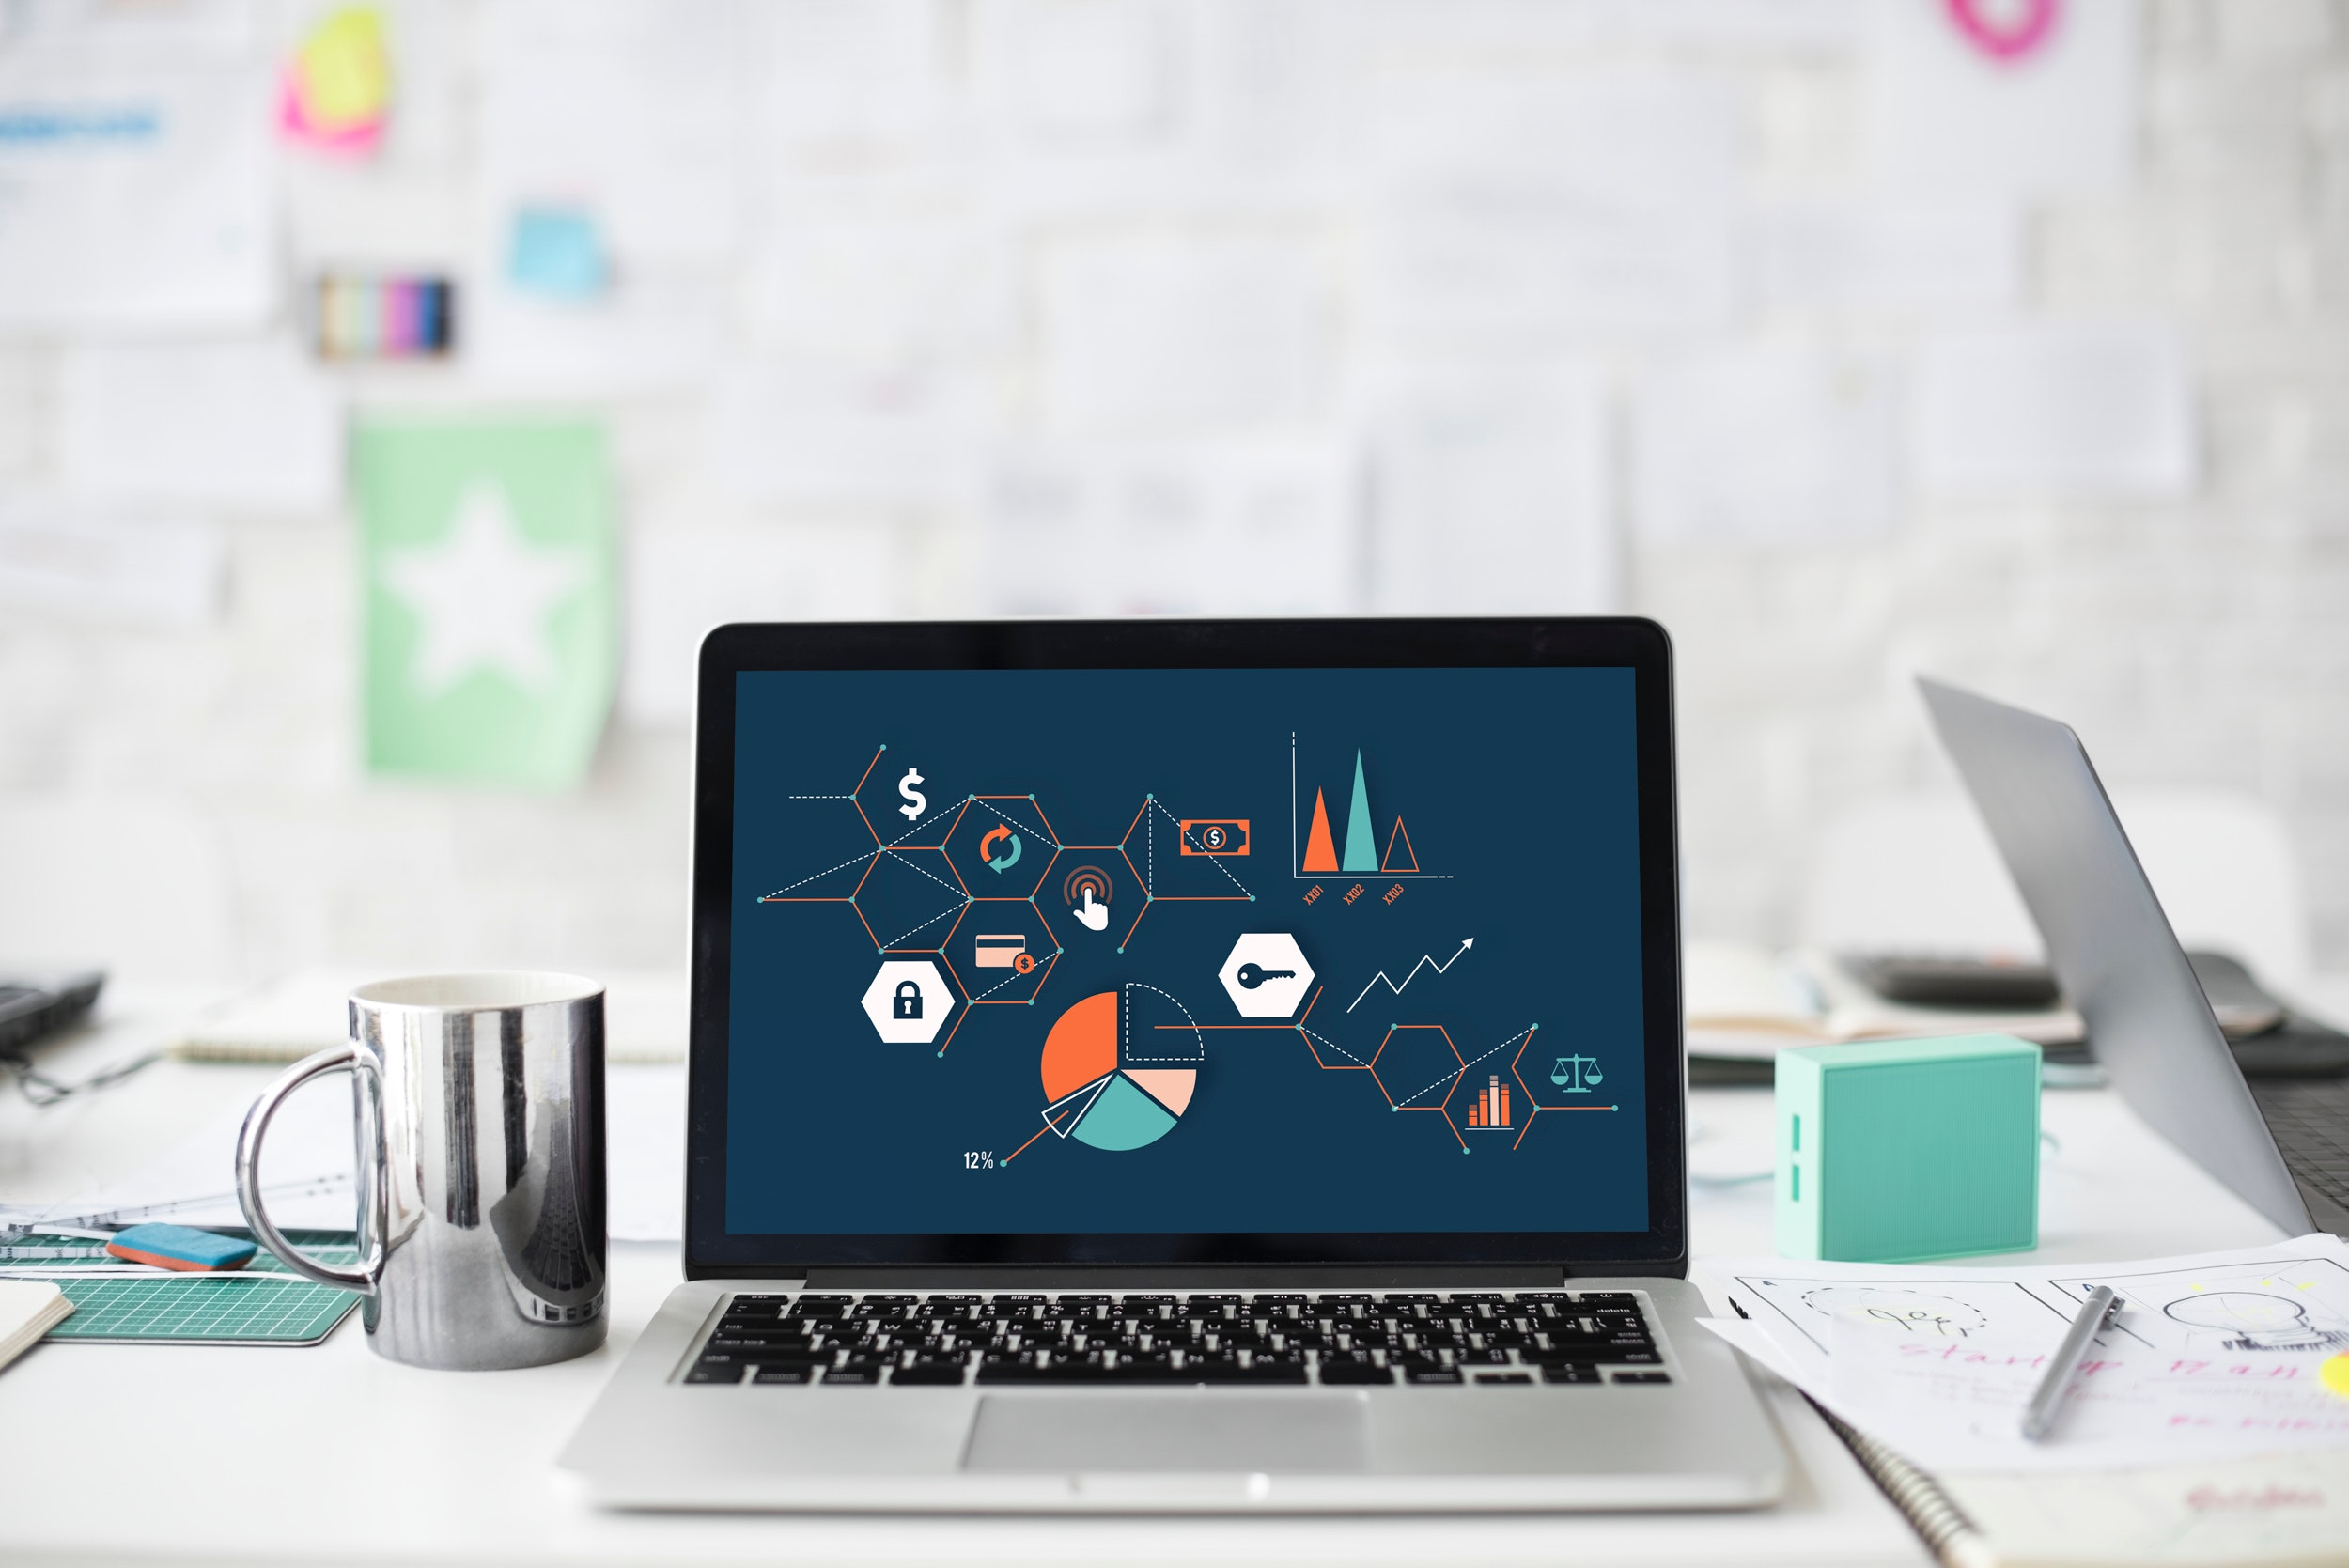 graphs and marketing images on macbook screen - SlyFox Web Design and Marketing